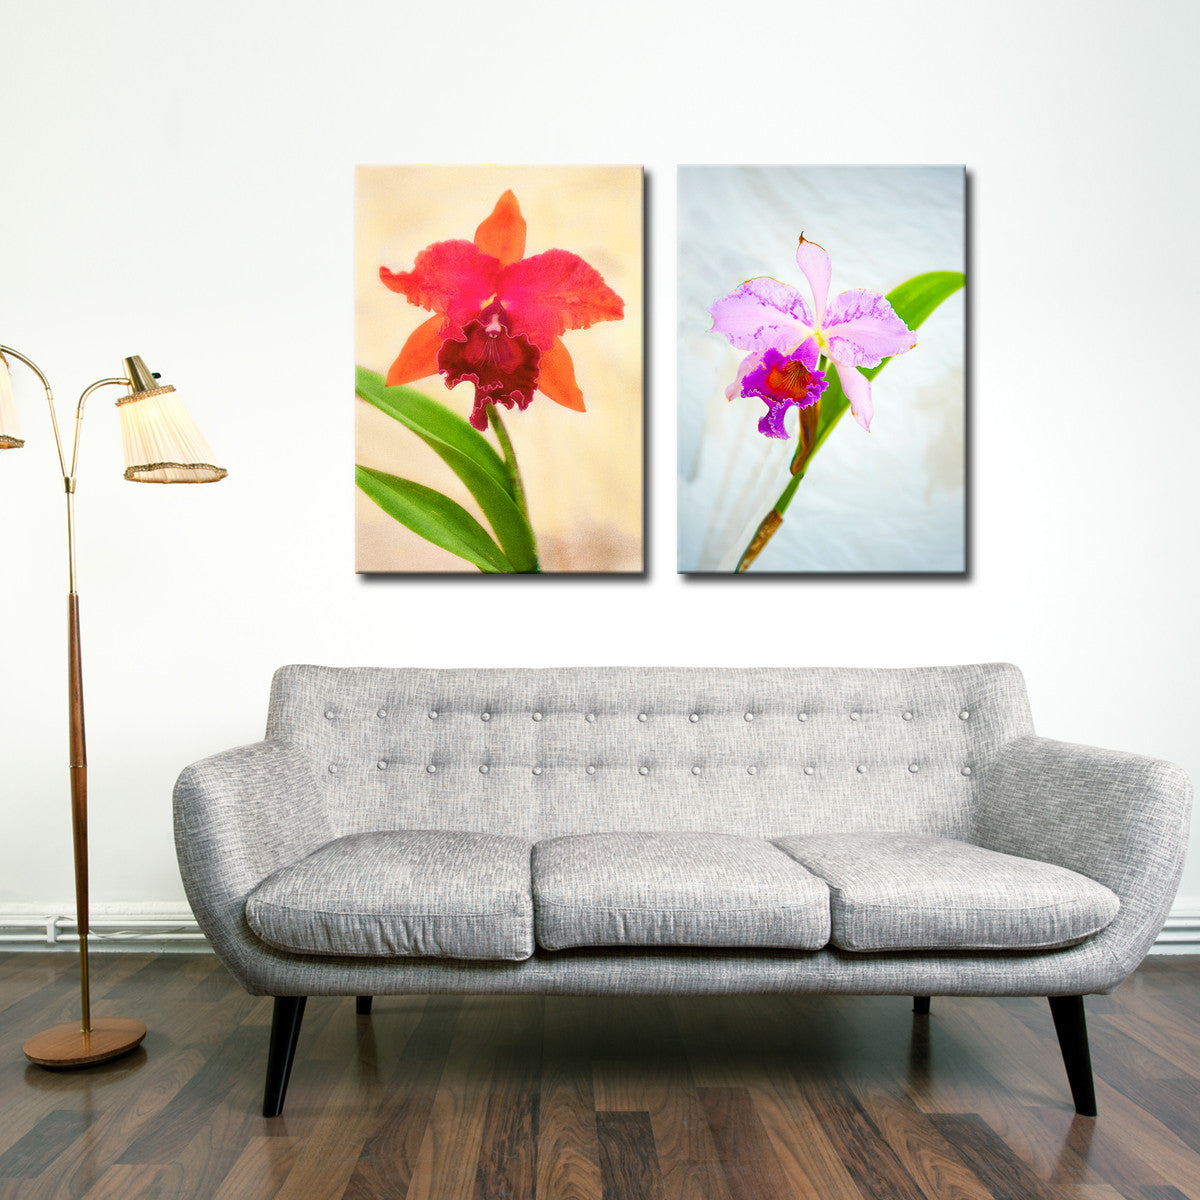 Bruce Bain 'Orchid Pastel' Canvas Wall Art